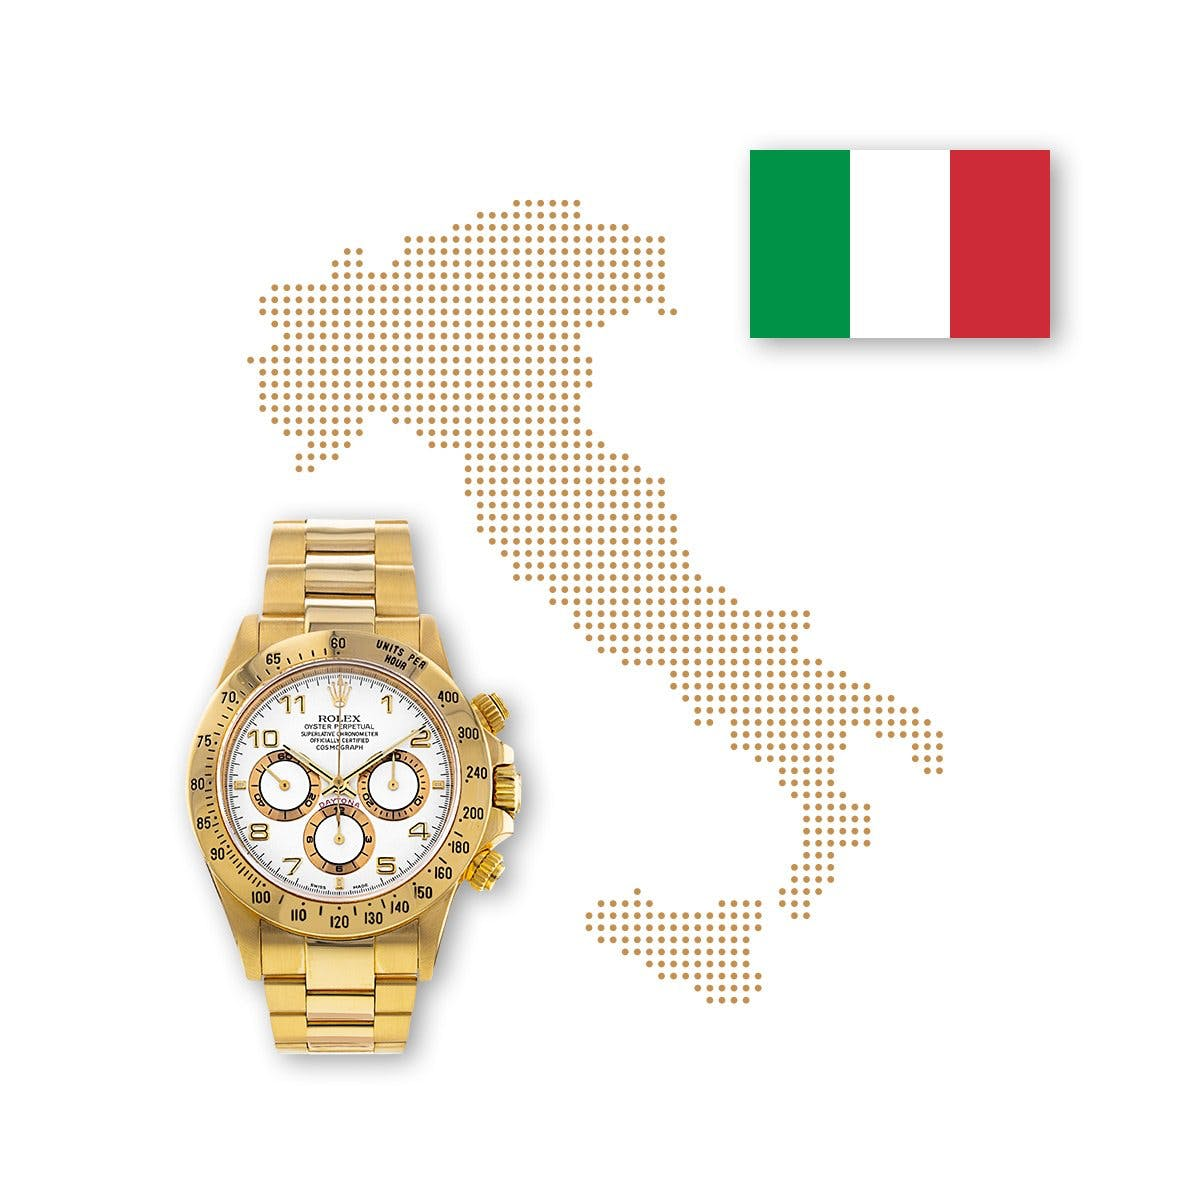 Rolex's reign continues unabated in Italy.